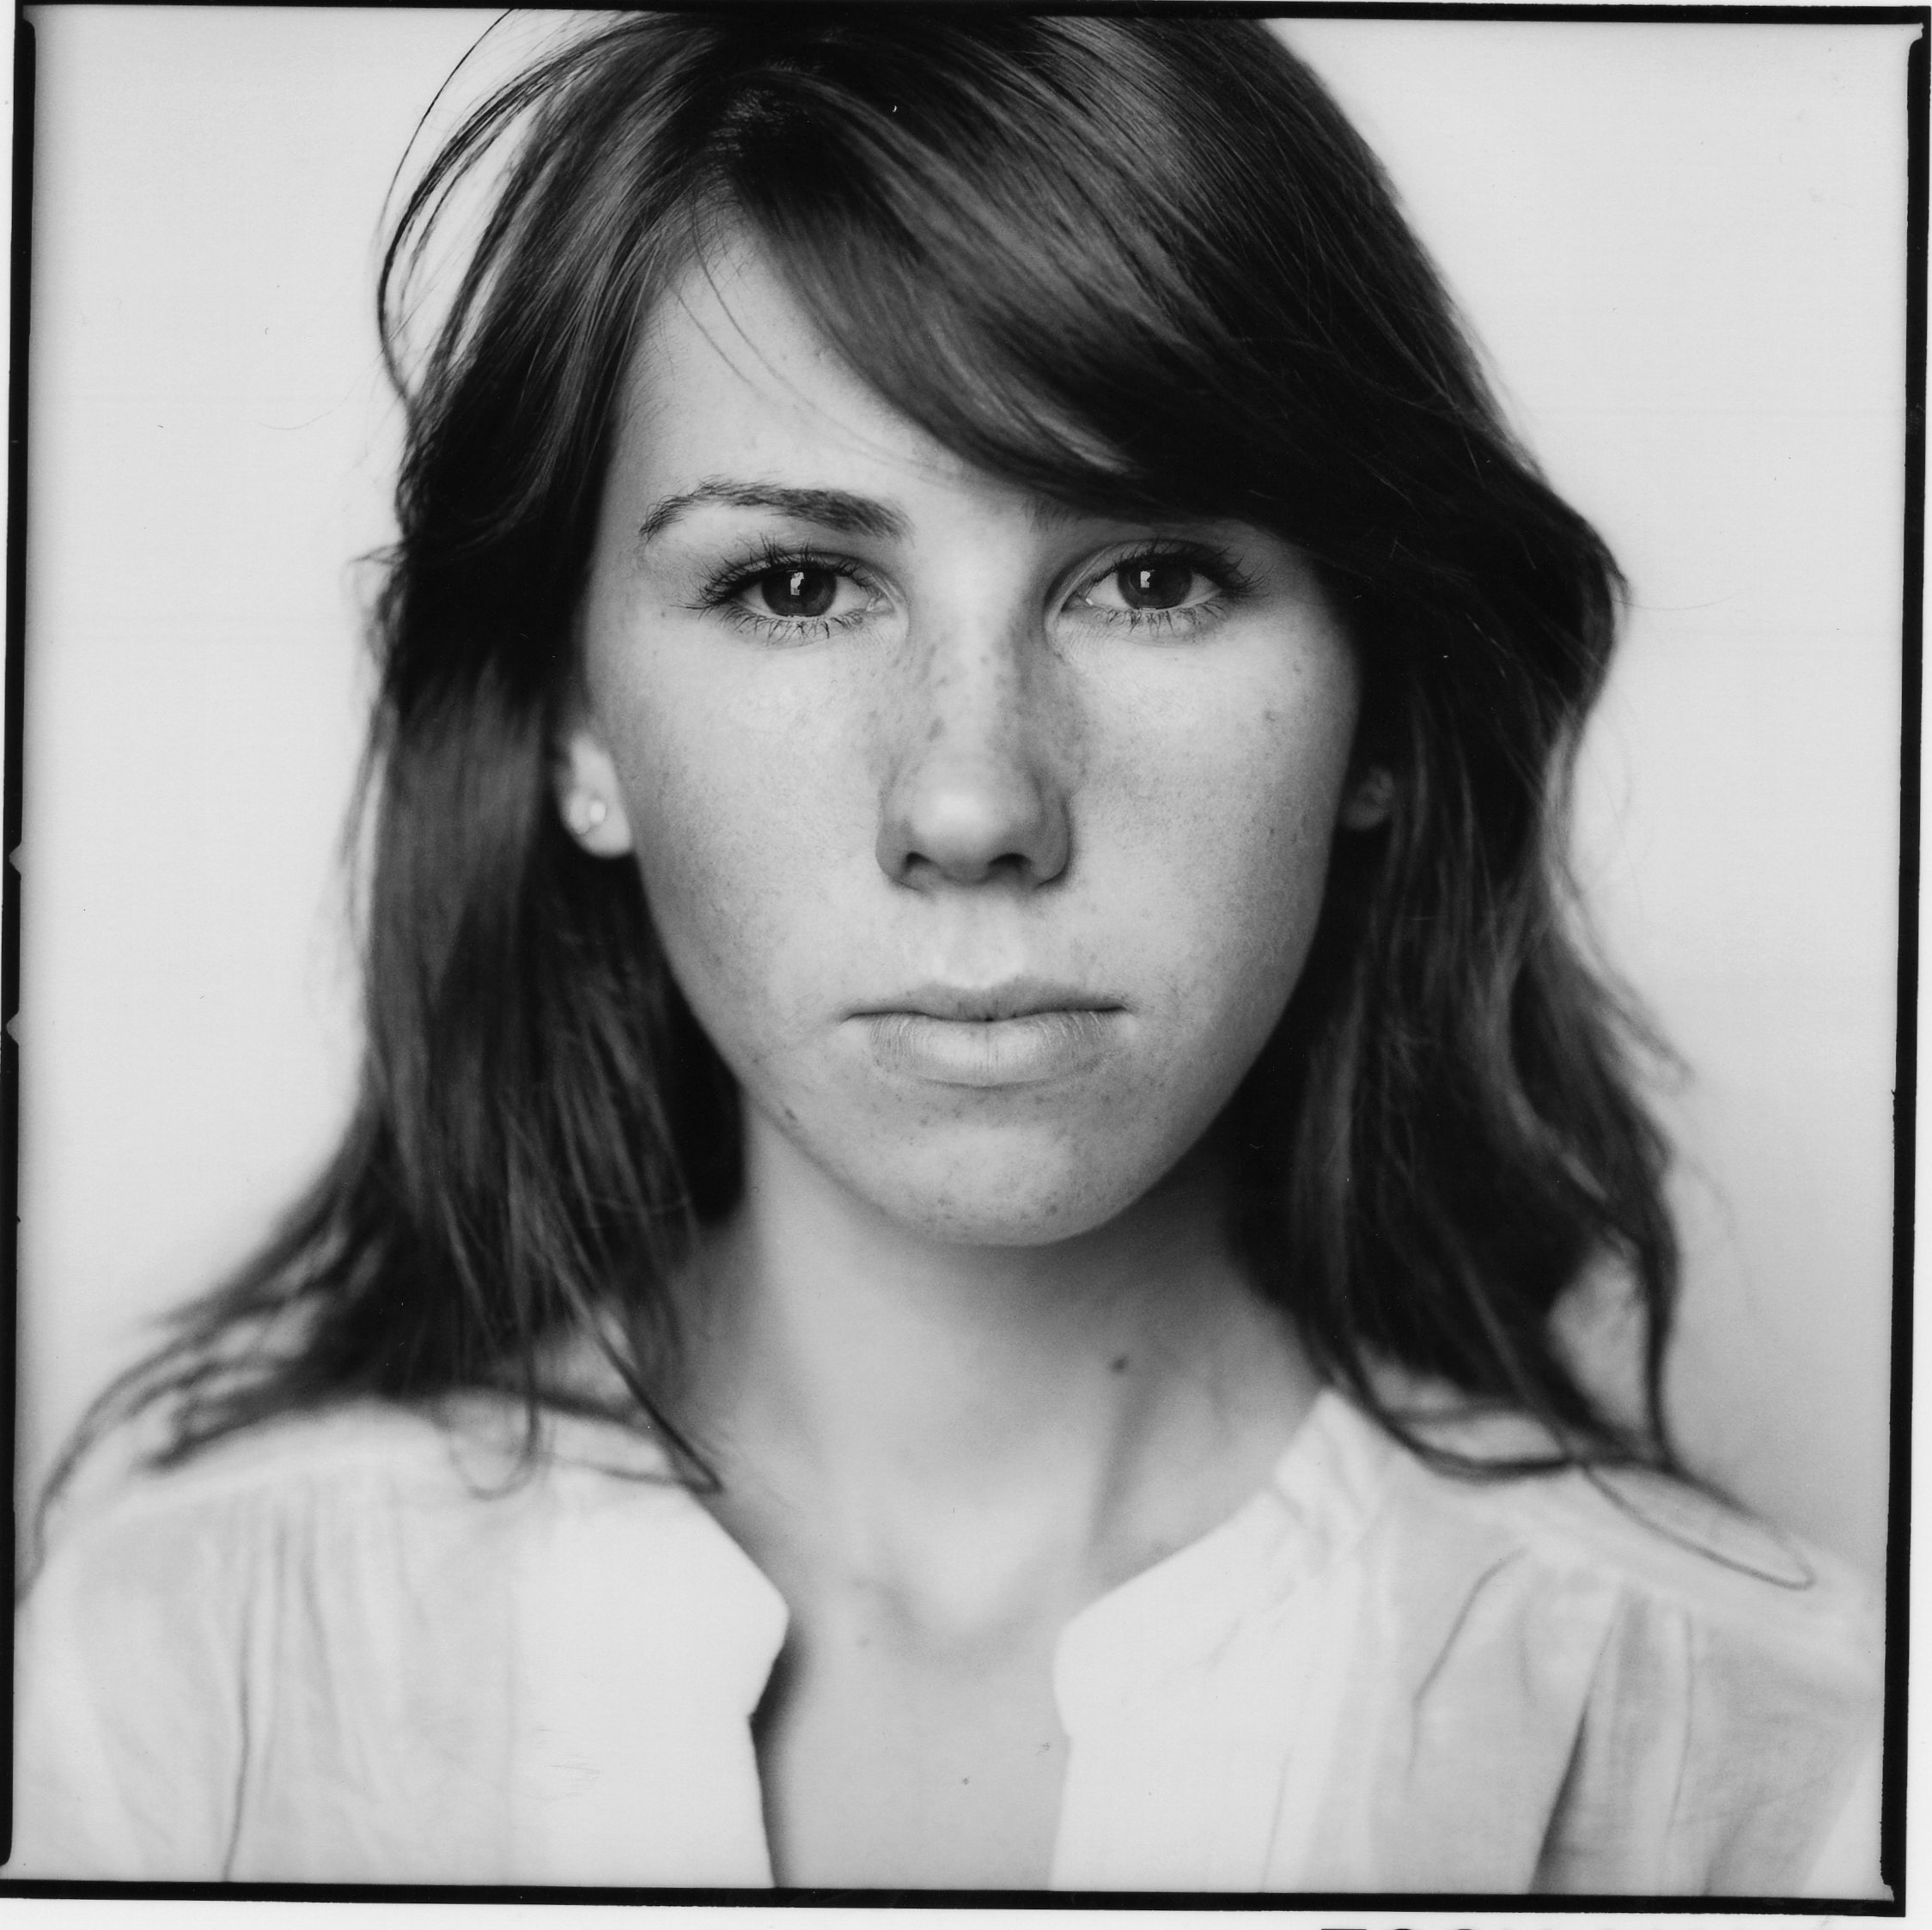 zosia mamet tattooszosia mamet interview, zosia mamet husband, zosia mamet name, zosia mamet twitter, zosia mamet & evan jonigkeit, zosia mamet wiki, zosia mamet instagram, zosia mamet wedding, zosia mamet style, zosia mamet patti smith, zosia mamet, зося мамет, zosia mamet imdb, zosia mamet net worth, zosia mamet singing, zosia mamet tumblr, zosia mamet zimbio, zosia mamet feet, zosia mamet polish, zosia mamet tattoos